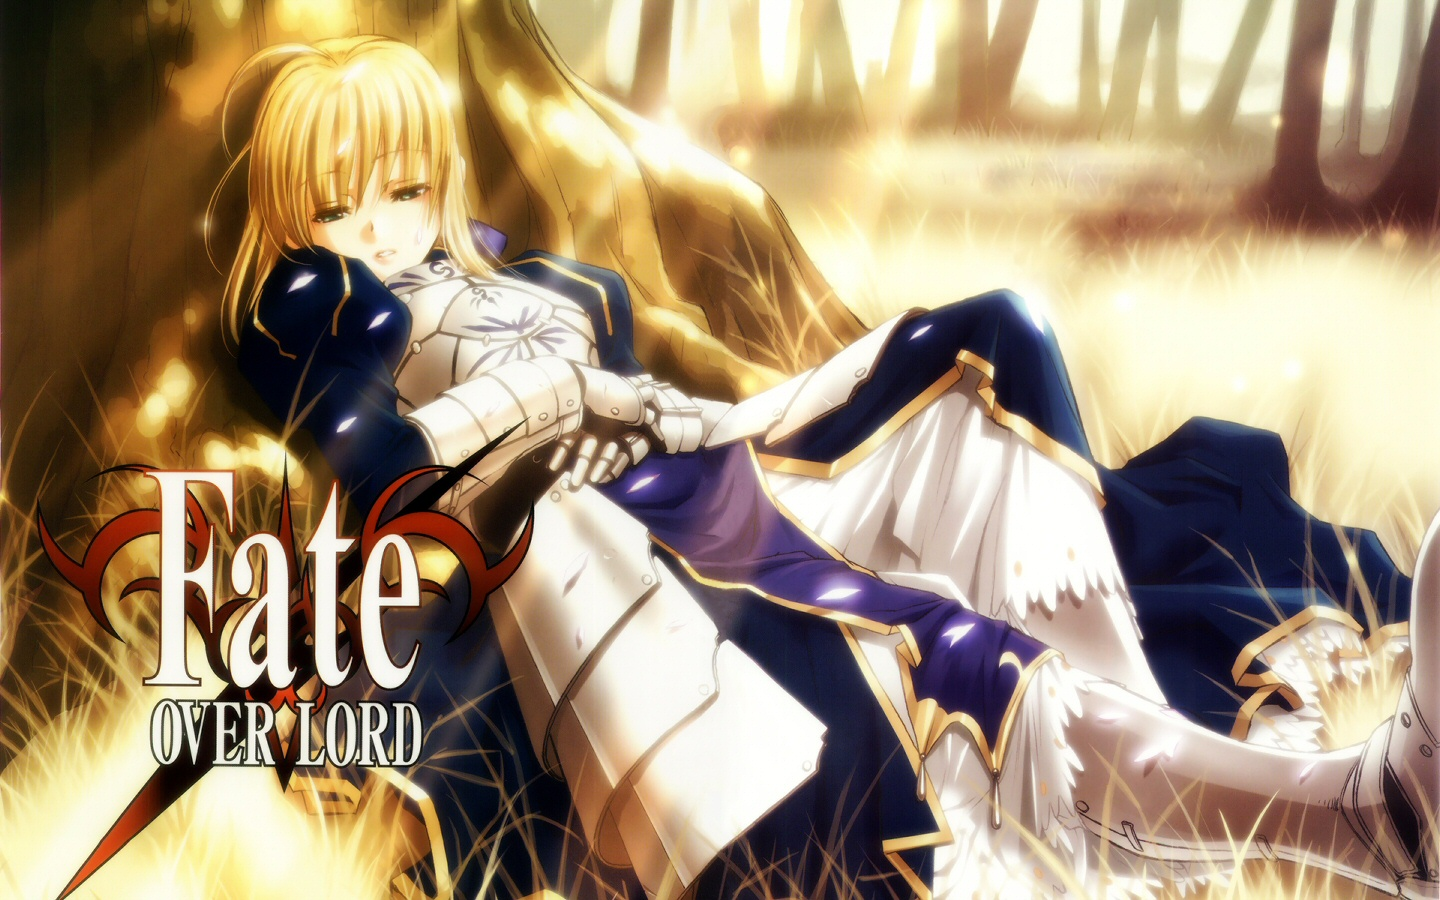 fate/stay night wallpaper 23 anime wallpaper - animewp